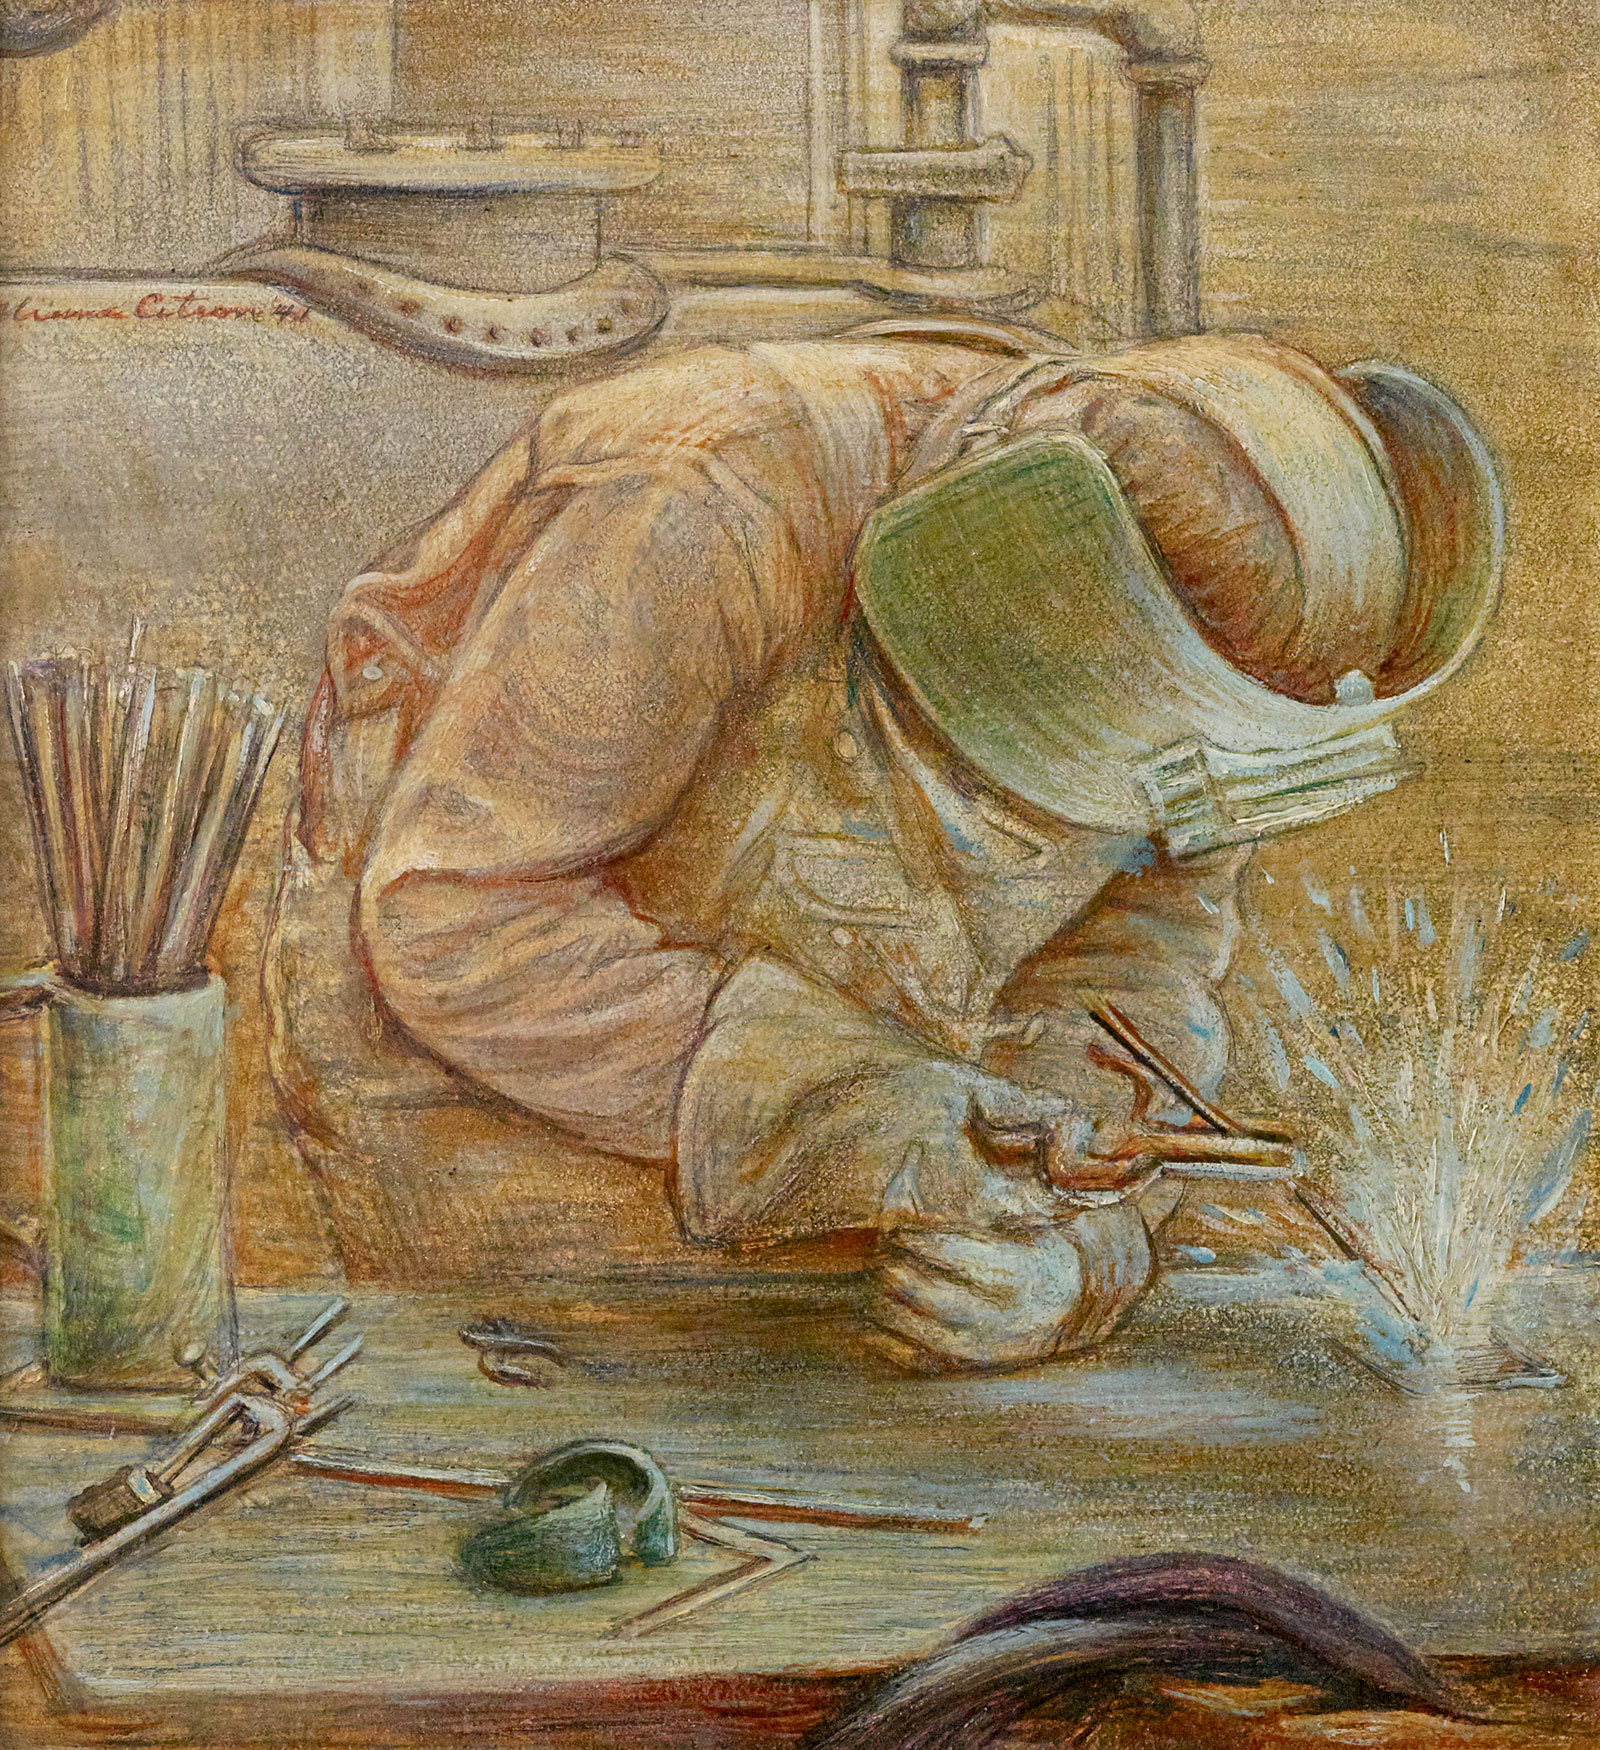 Painting of a welder wearing a mask